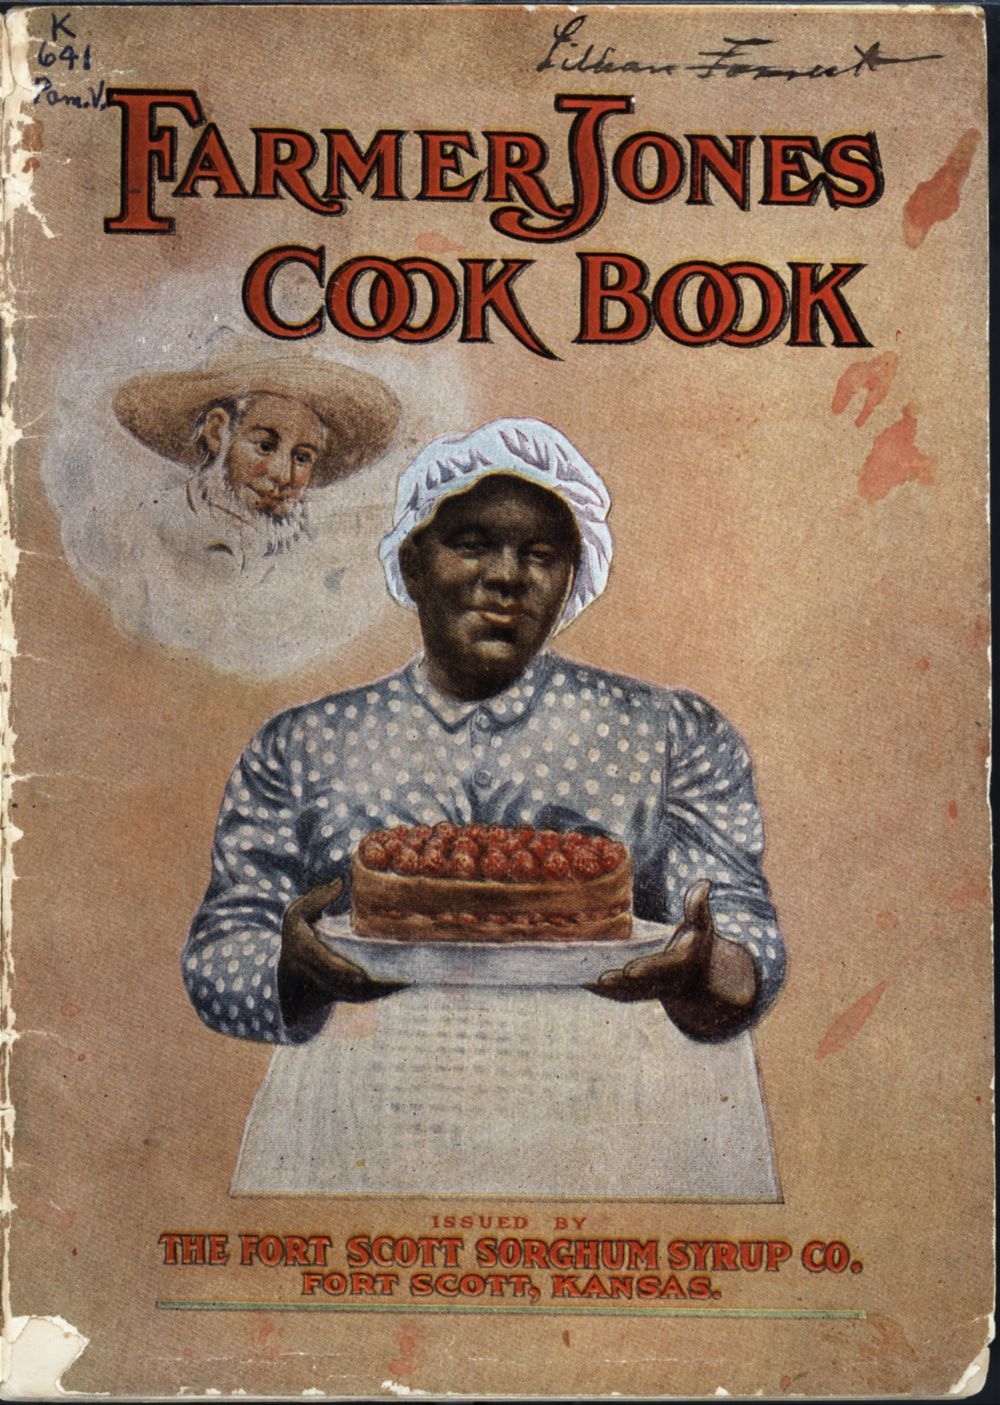 Farmer Jones Cook Book - 1